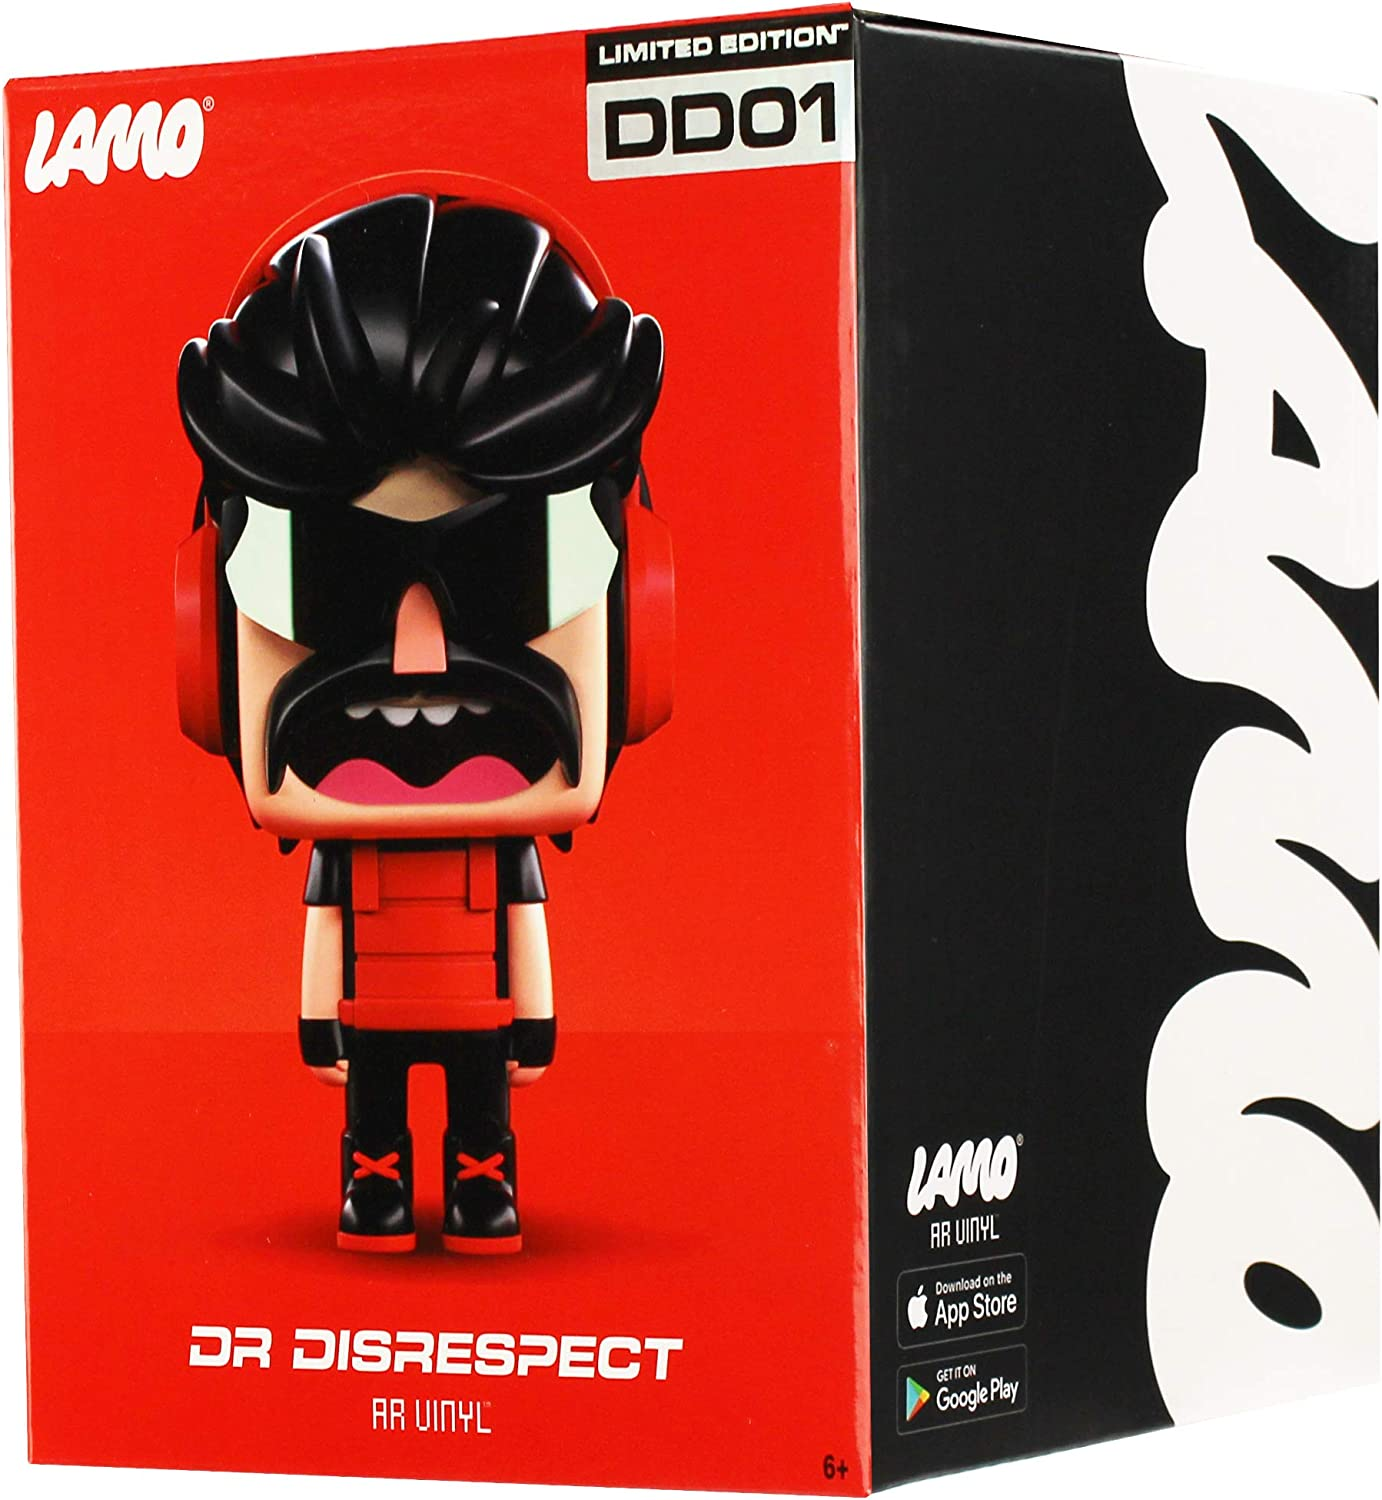 Dr respect Lamo AR Limited Edition Vinyl Figure DD01 Wicked Cool Toys NEW IN BOX